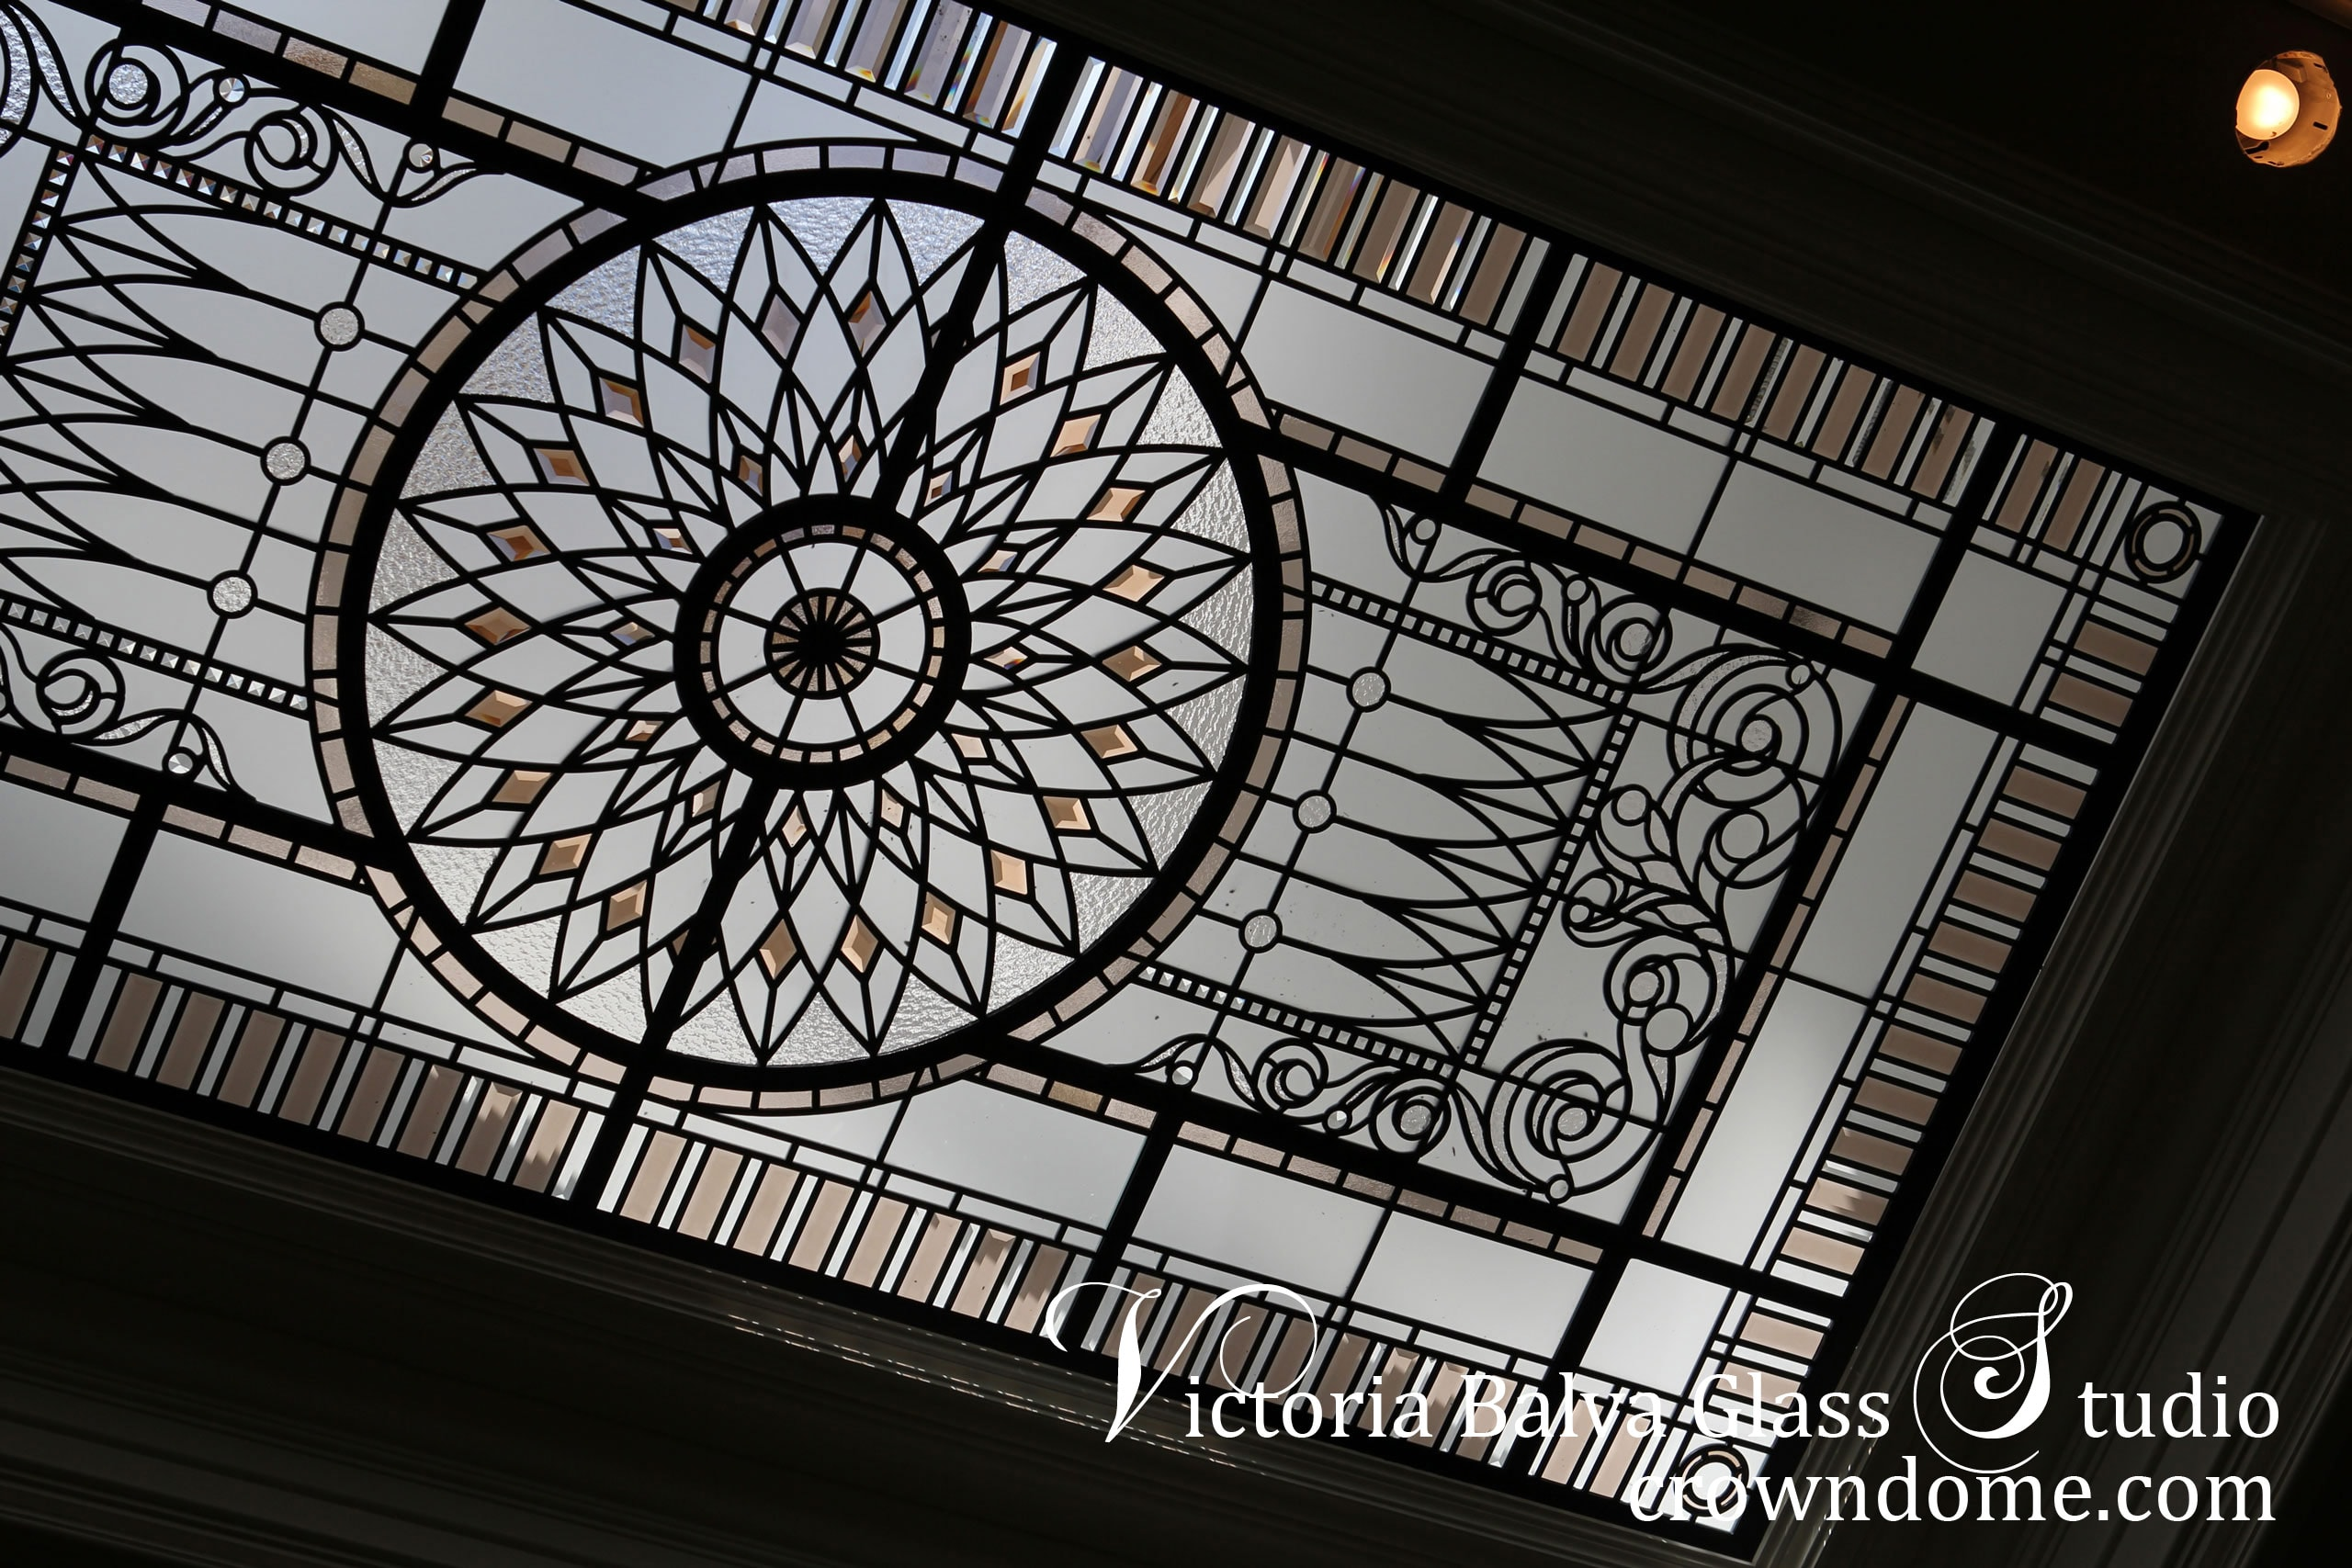 Stained leaded glass skylight ceiling Marion with pale colored beveled glass, acanthus ornamental border, clear textured glass for a stairwell of a custom built residence on Mississauga Rd. Luxury style is reflected in stained leaded glass skylight design